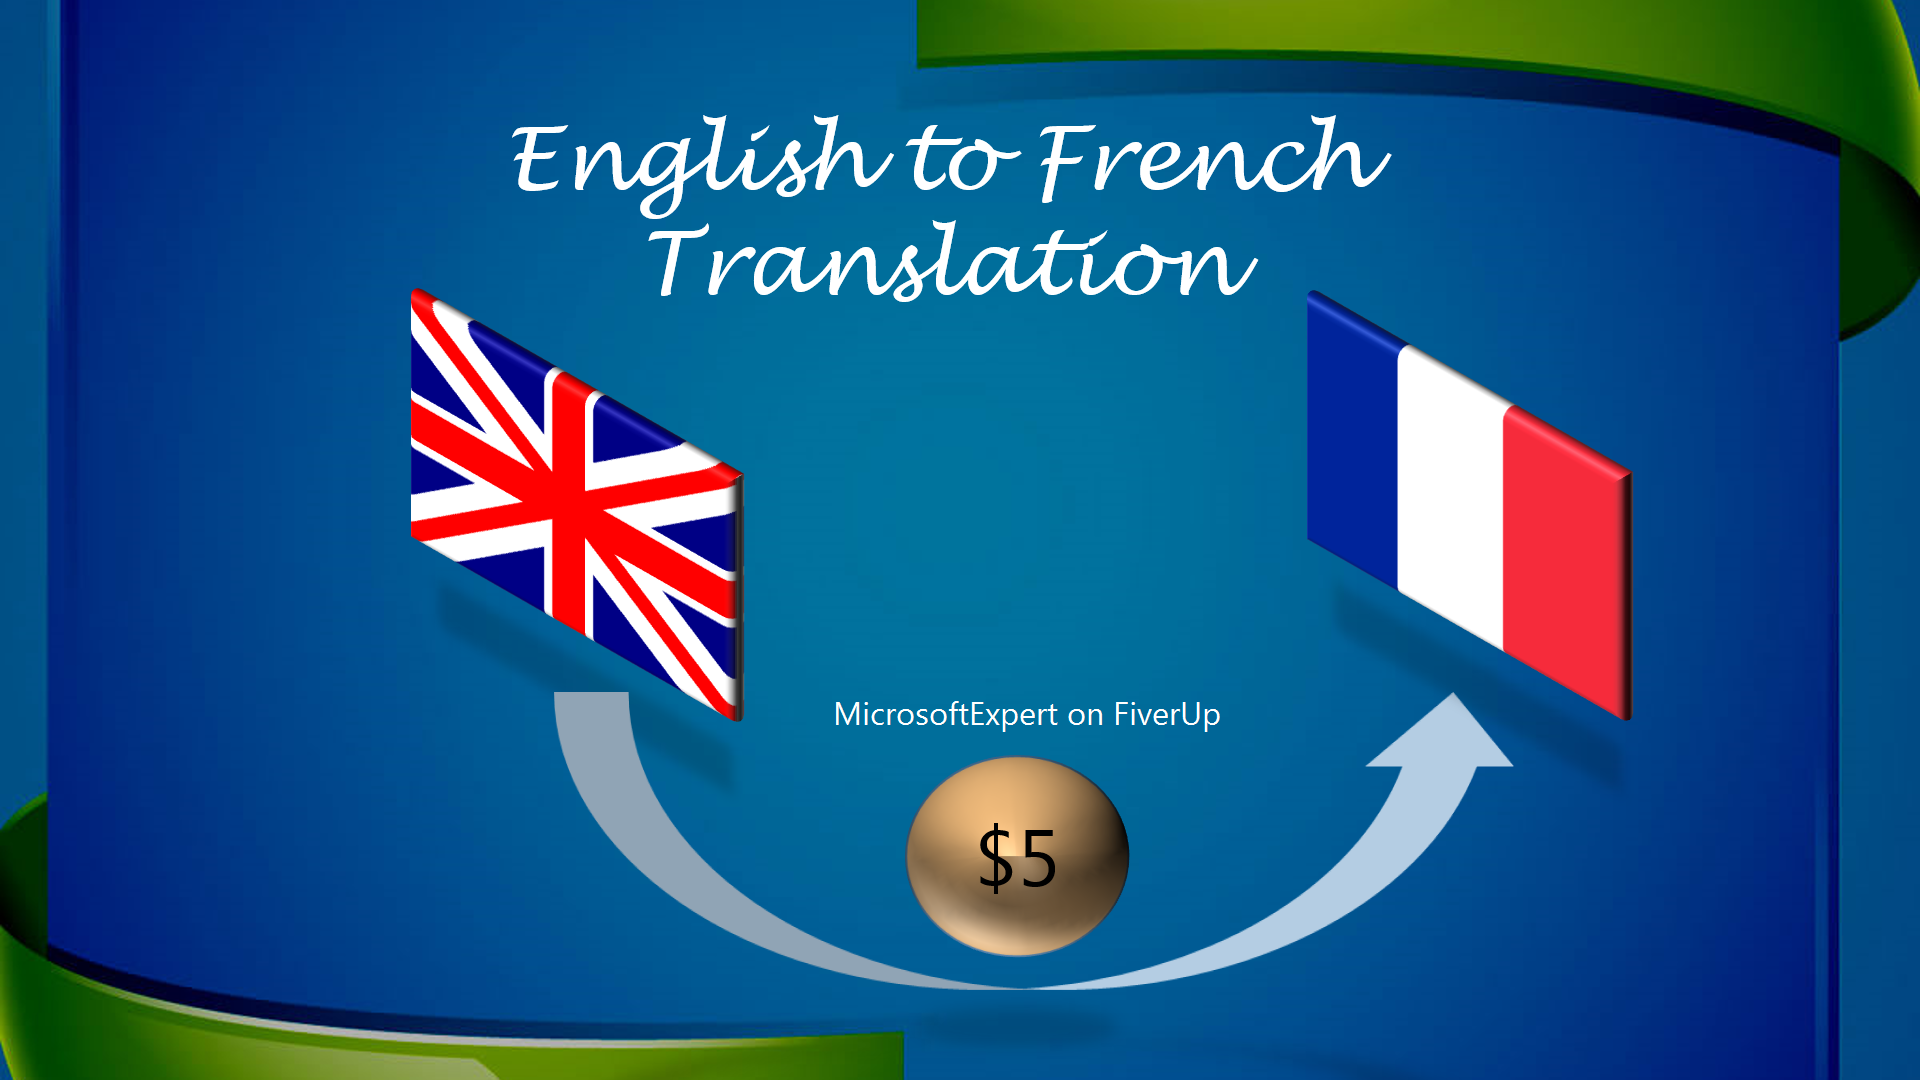 do a human translation from English to French